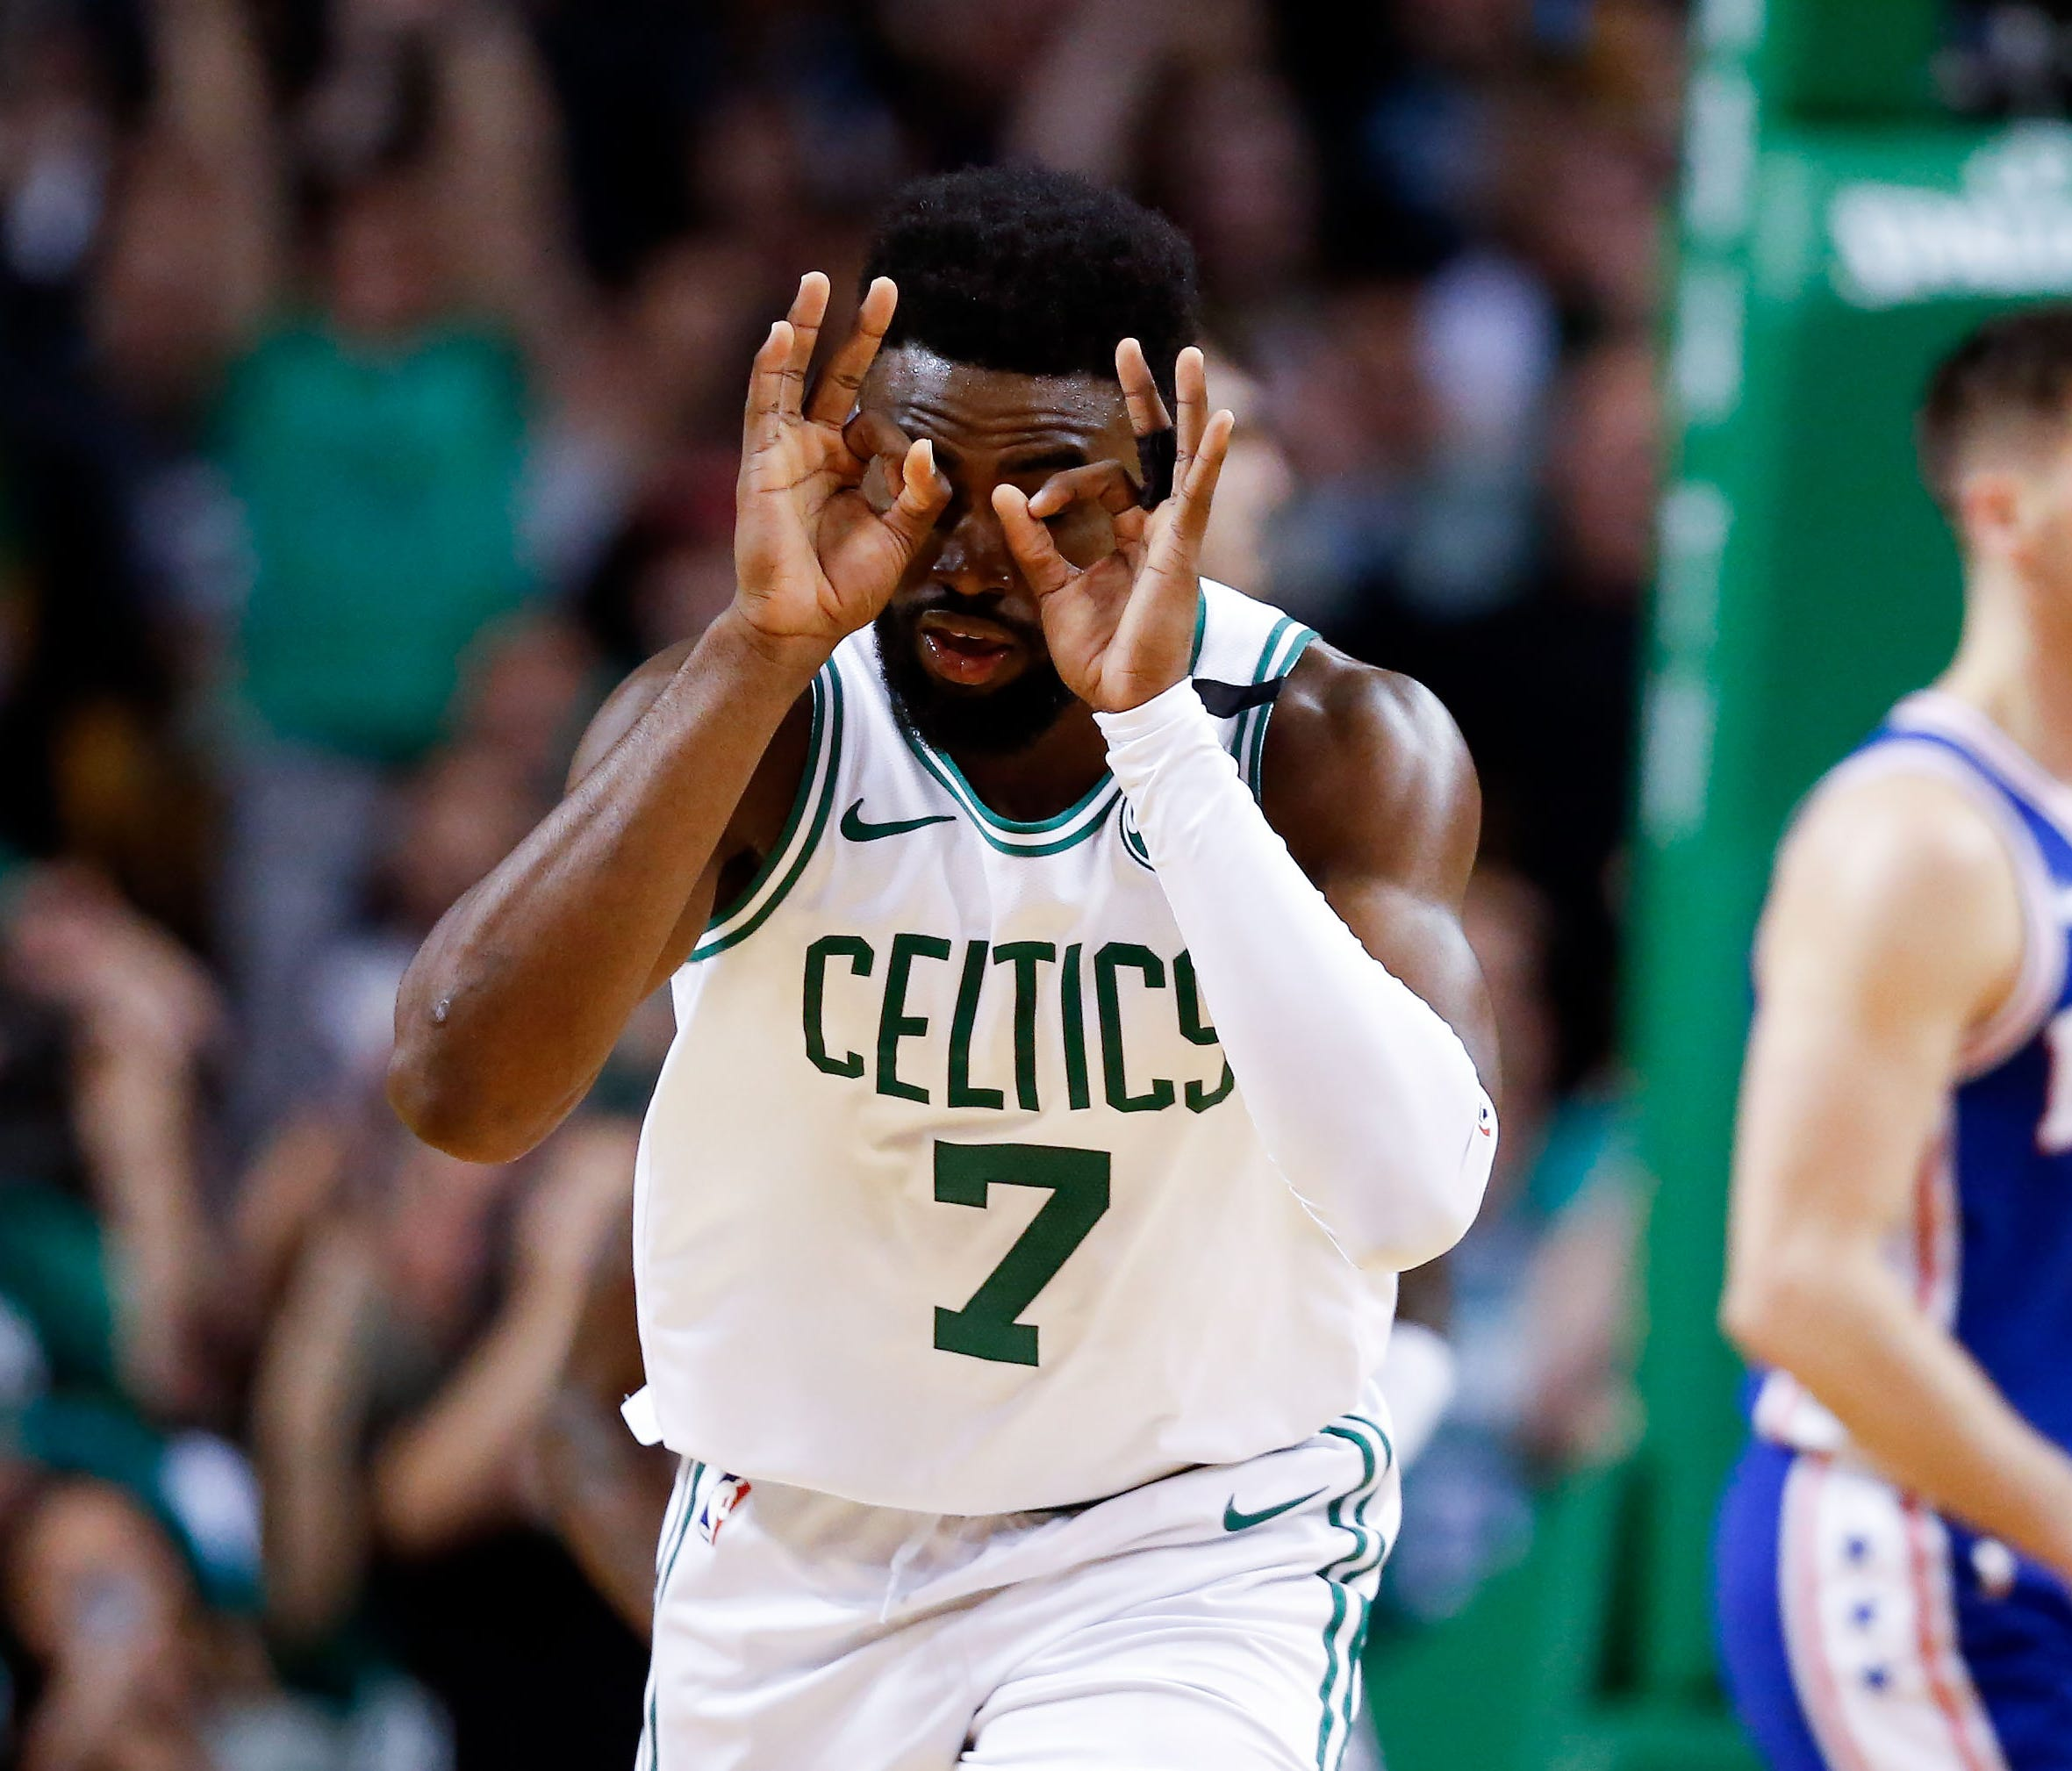 Boston Celtics guard Jaylen Brown (7) reacts after scoring against the Philadelphia 76ers during the second half in game five of the second round of the 2018 NBA Playoffs at the TD Garden.